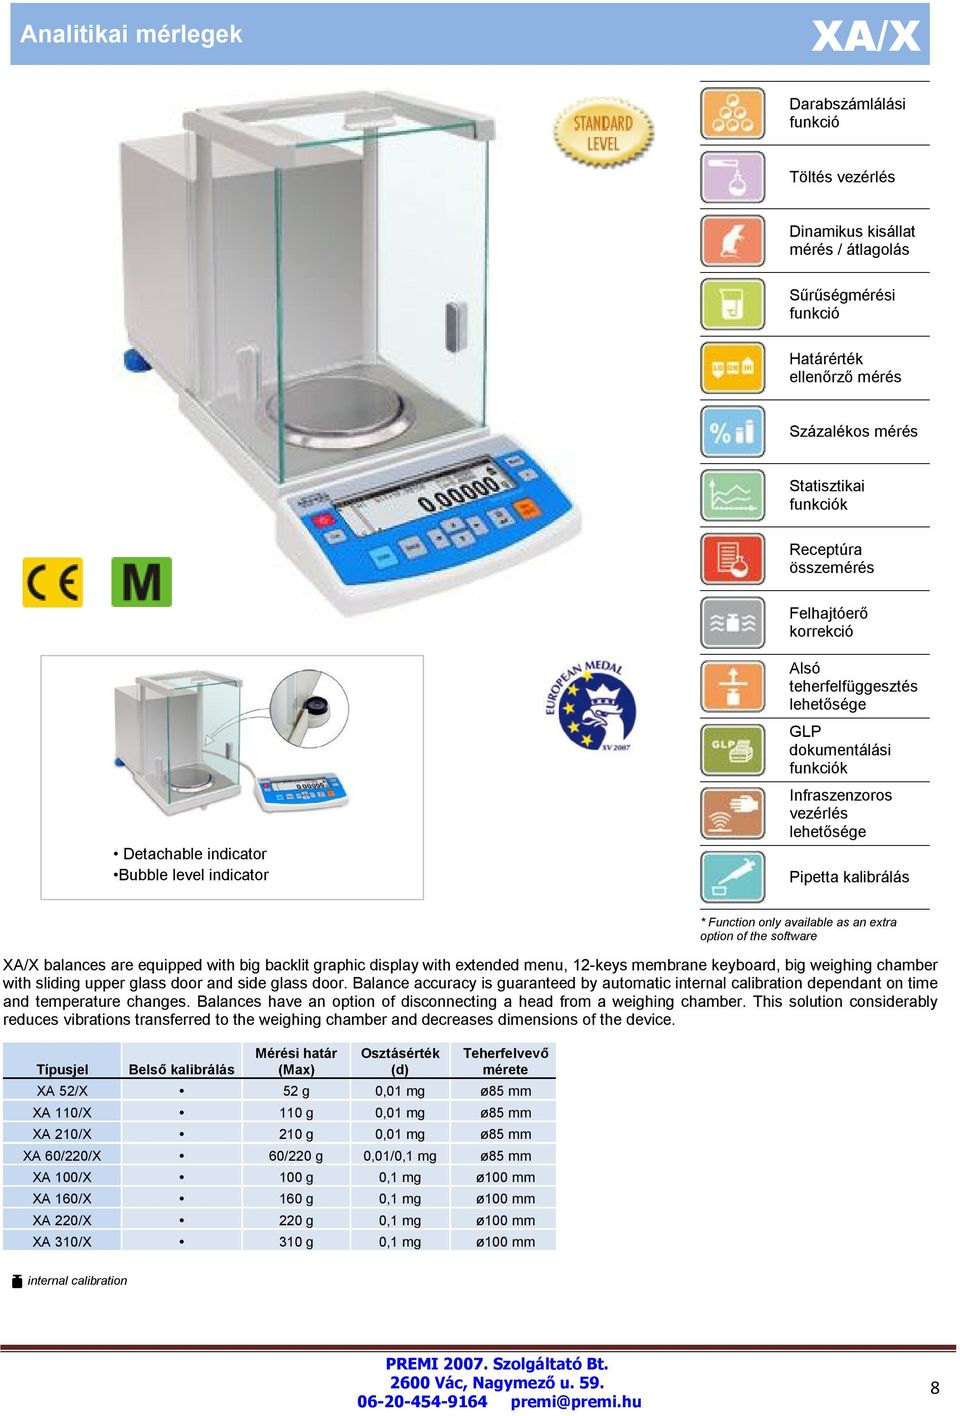 extended menu, 12-keys membrane keyboard, big weighing chamber with sliding upper glass door and side glass door. Balance accuracy is guaranteed by automatic dependant on time and temperature changes.